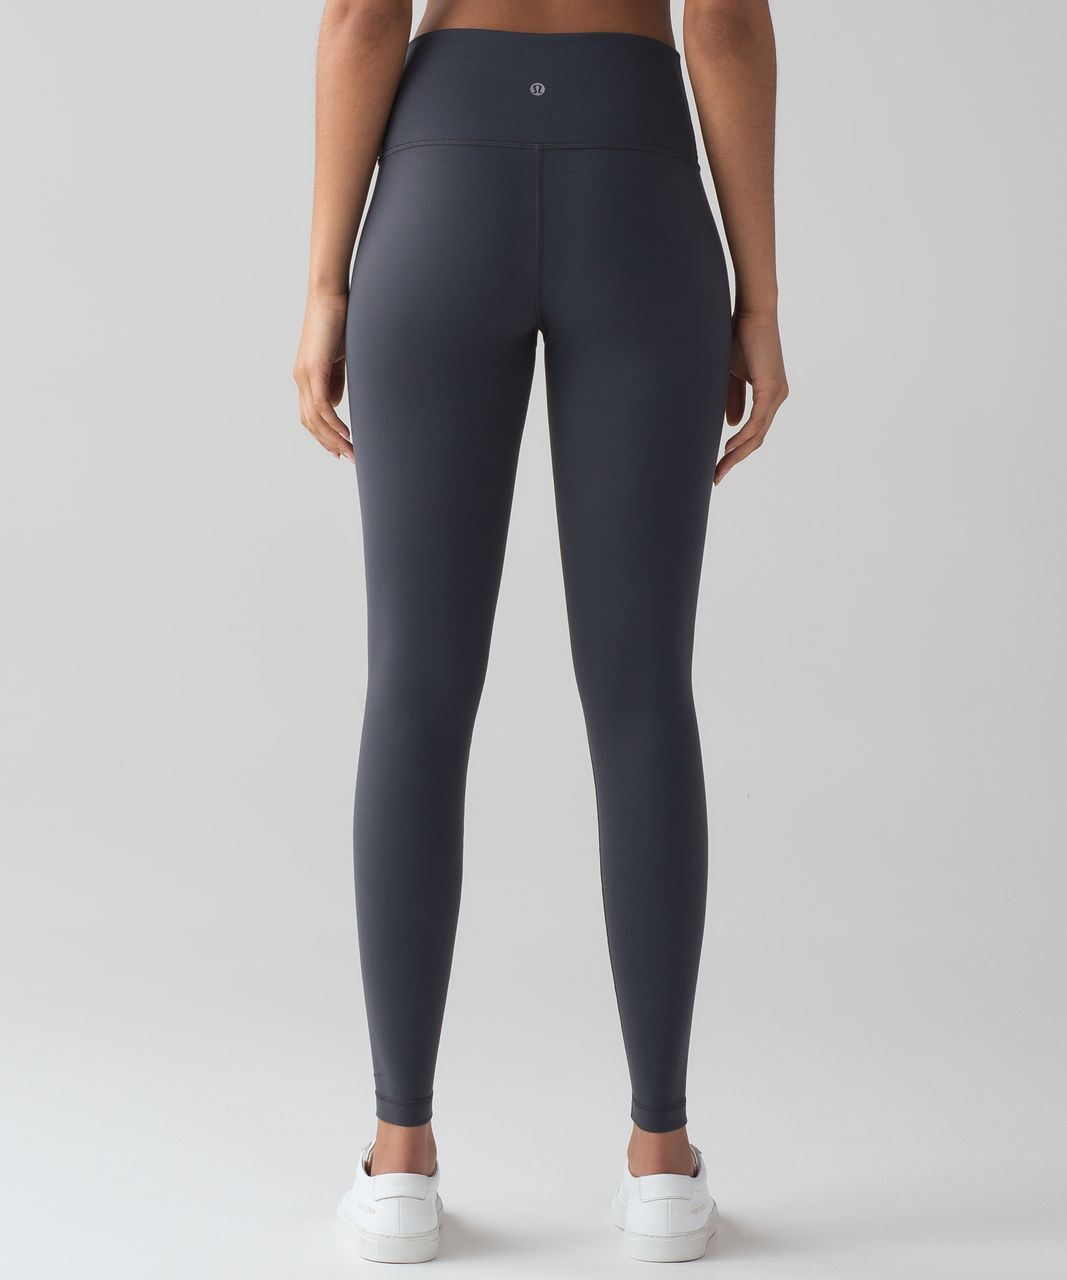 Lululemon Wunder Under Hi Rise Tight Full On Luon Blue Tied Lulu Fanatics In 2020 Lululemon Outfits Womens Printed Leggings Outfits With Leggings